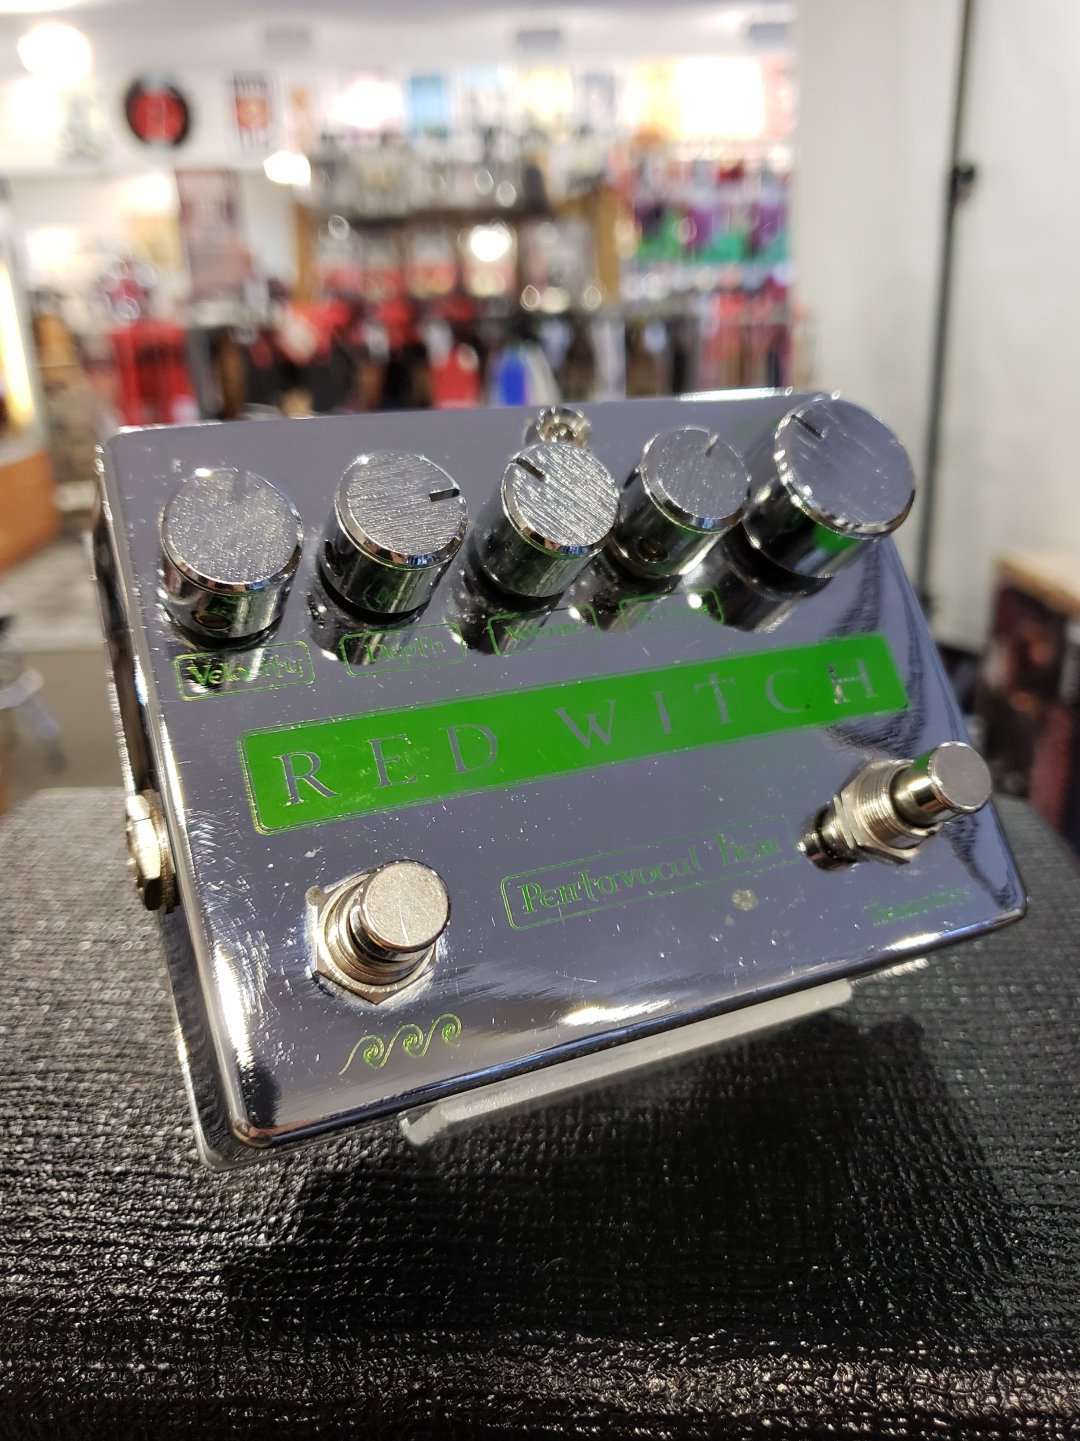 USED Red Witch Pentavocal Tremolo Chrome